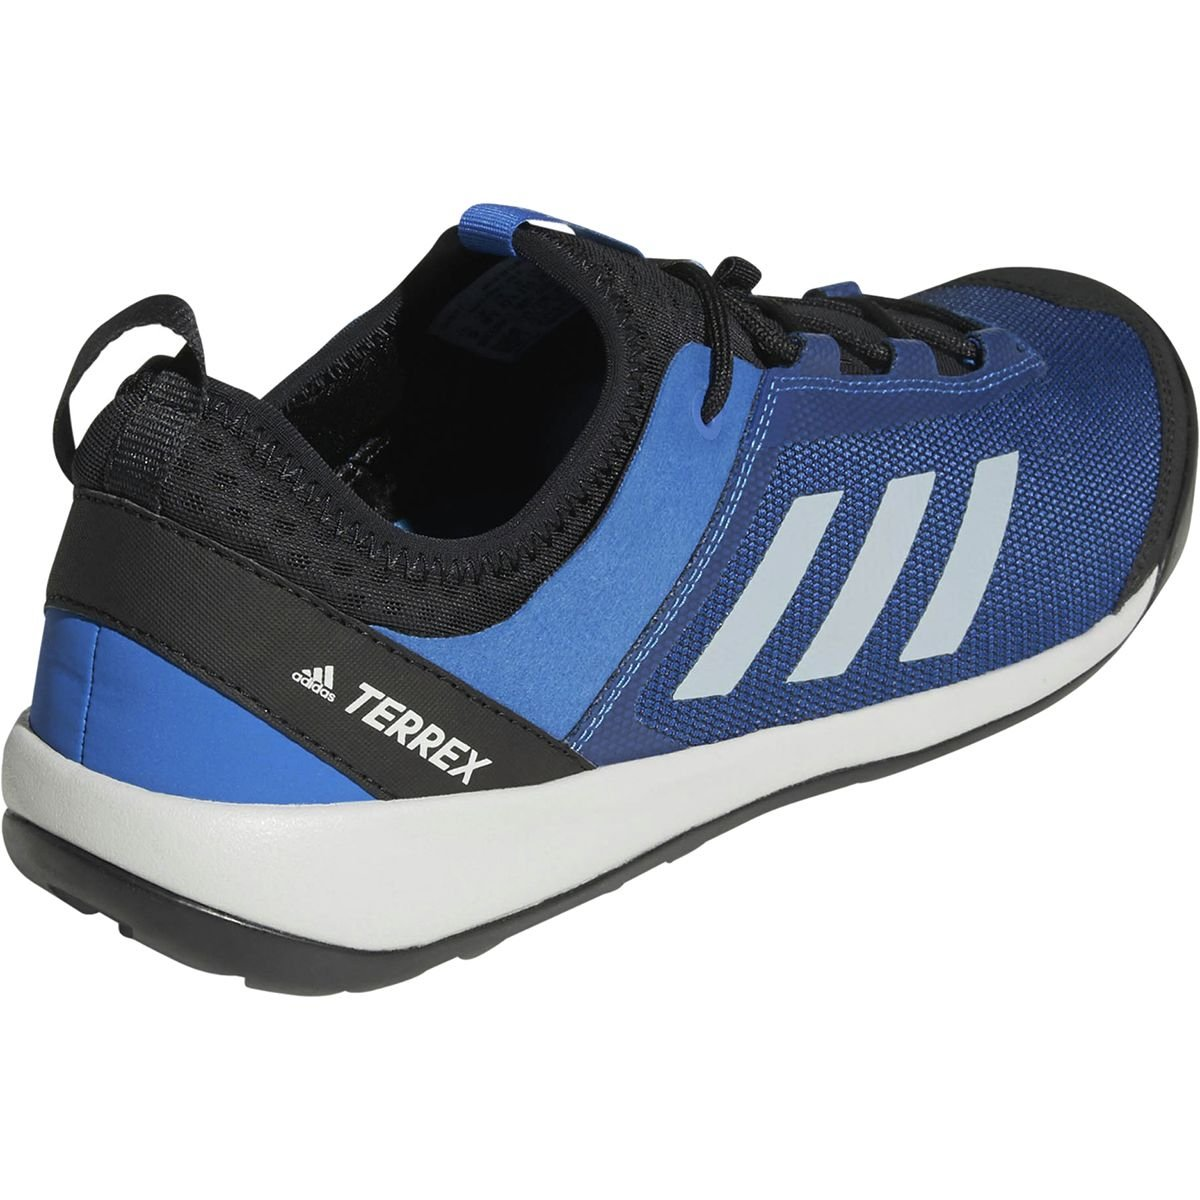 23d98502a9dda adidas outdoor Men's Terrex Swift Solo Blue Beauty/Grey One/Bright Blue 10  D US